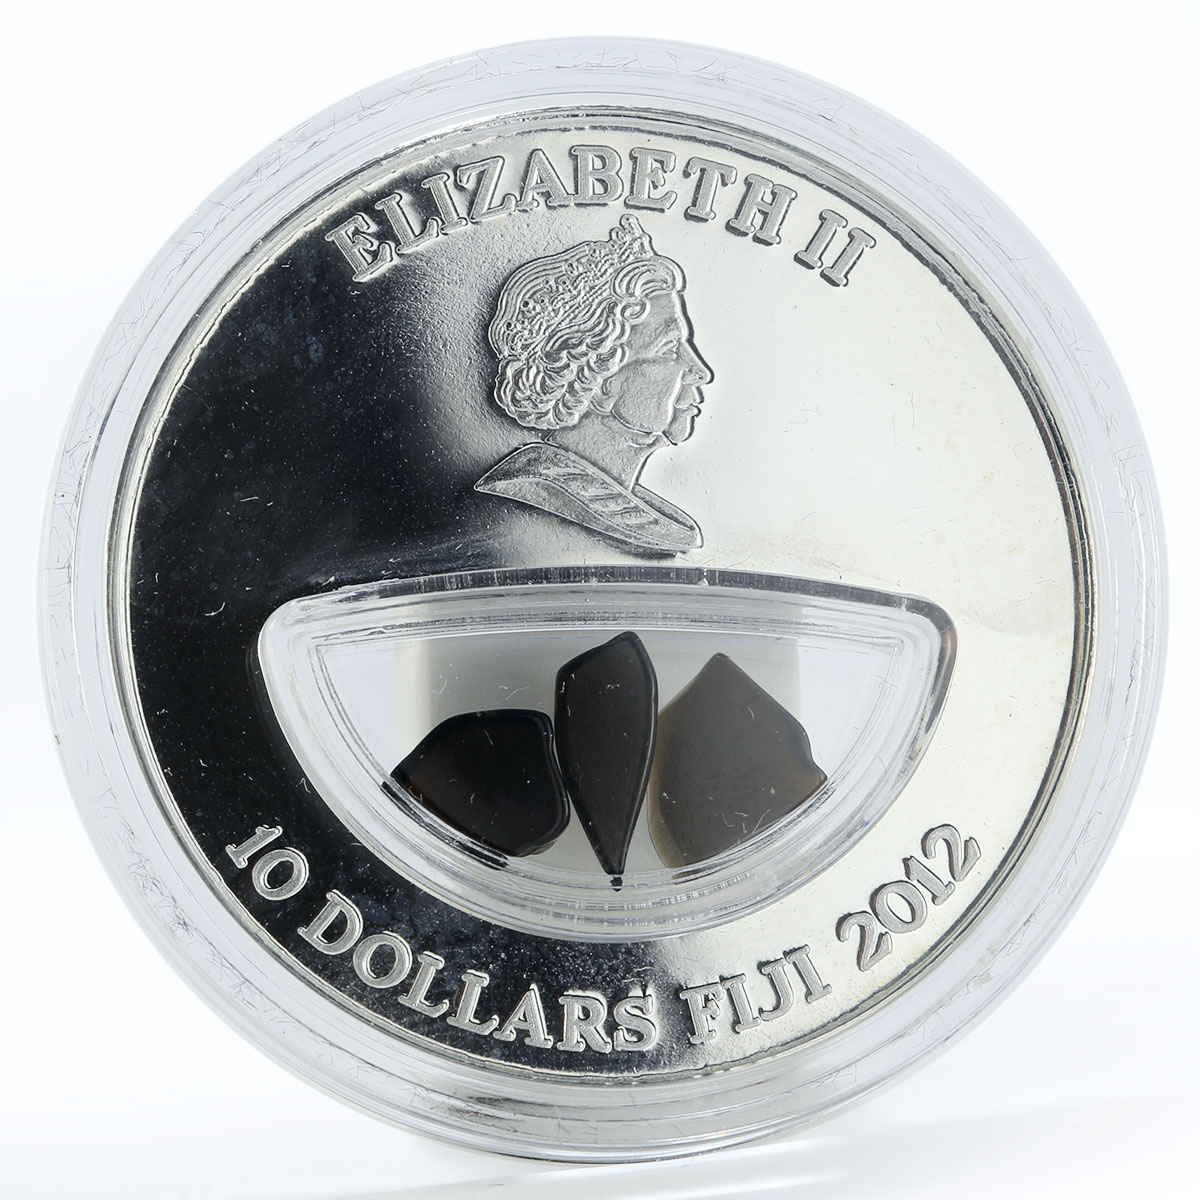 Fiji 10 dollars Meteorites Abee Canada 1952 colored proof silver coin 2012